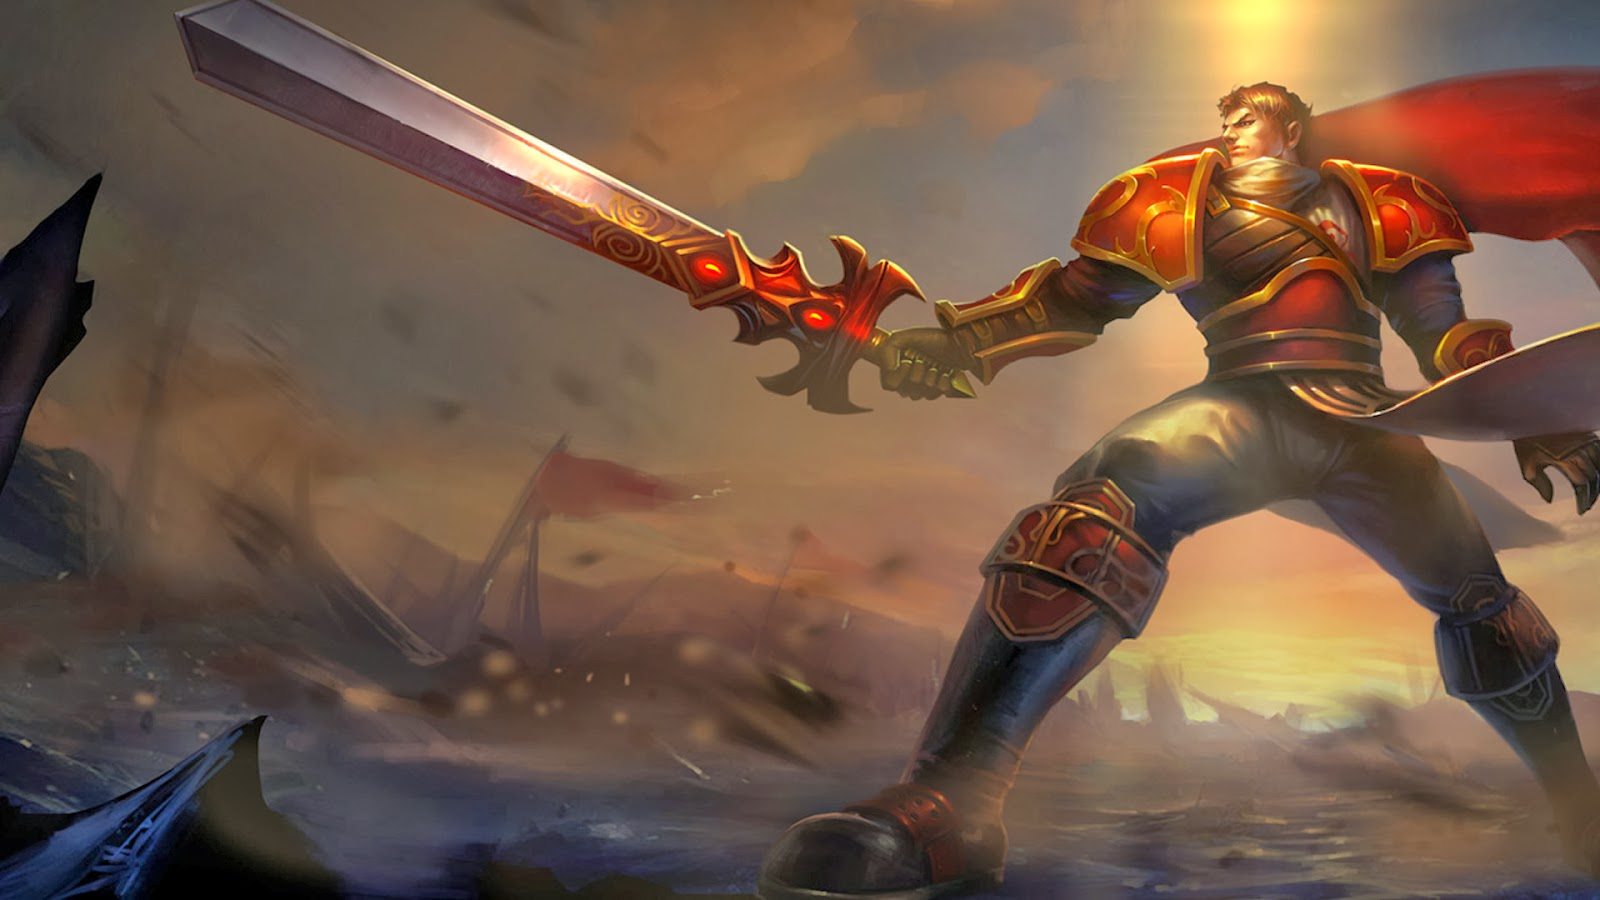 Garen League of Legends Wallpaper full HD Desktop 4 - Garen Champion Spotlight